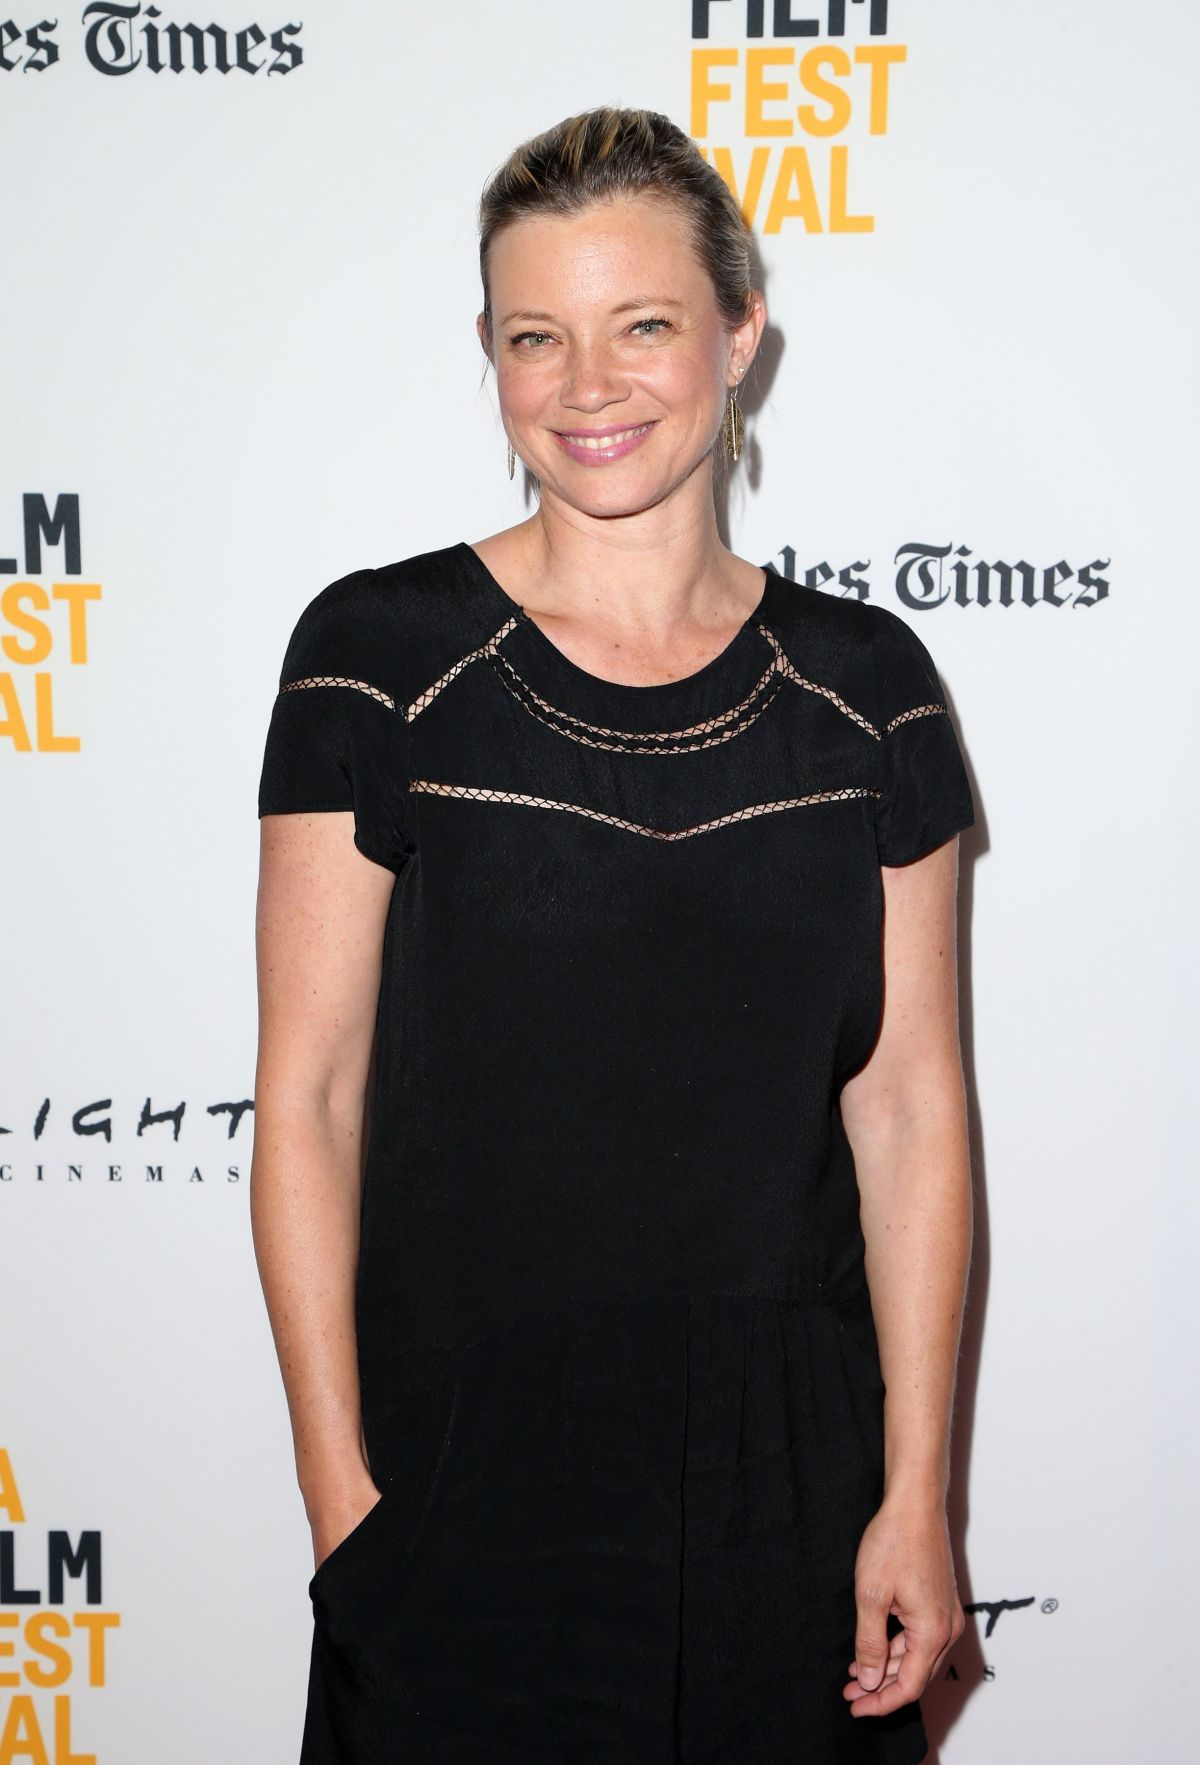 AMY SMART at The Keeping Hours Screening in Culver City 06/15/2017